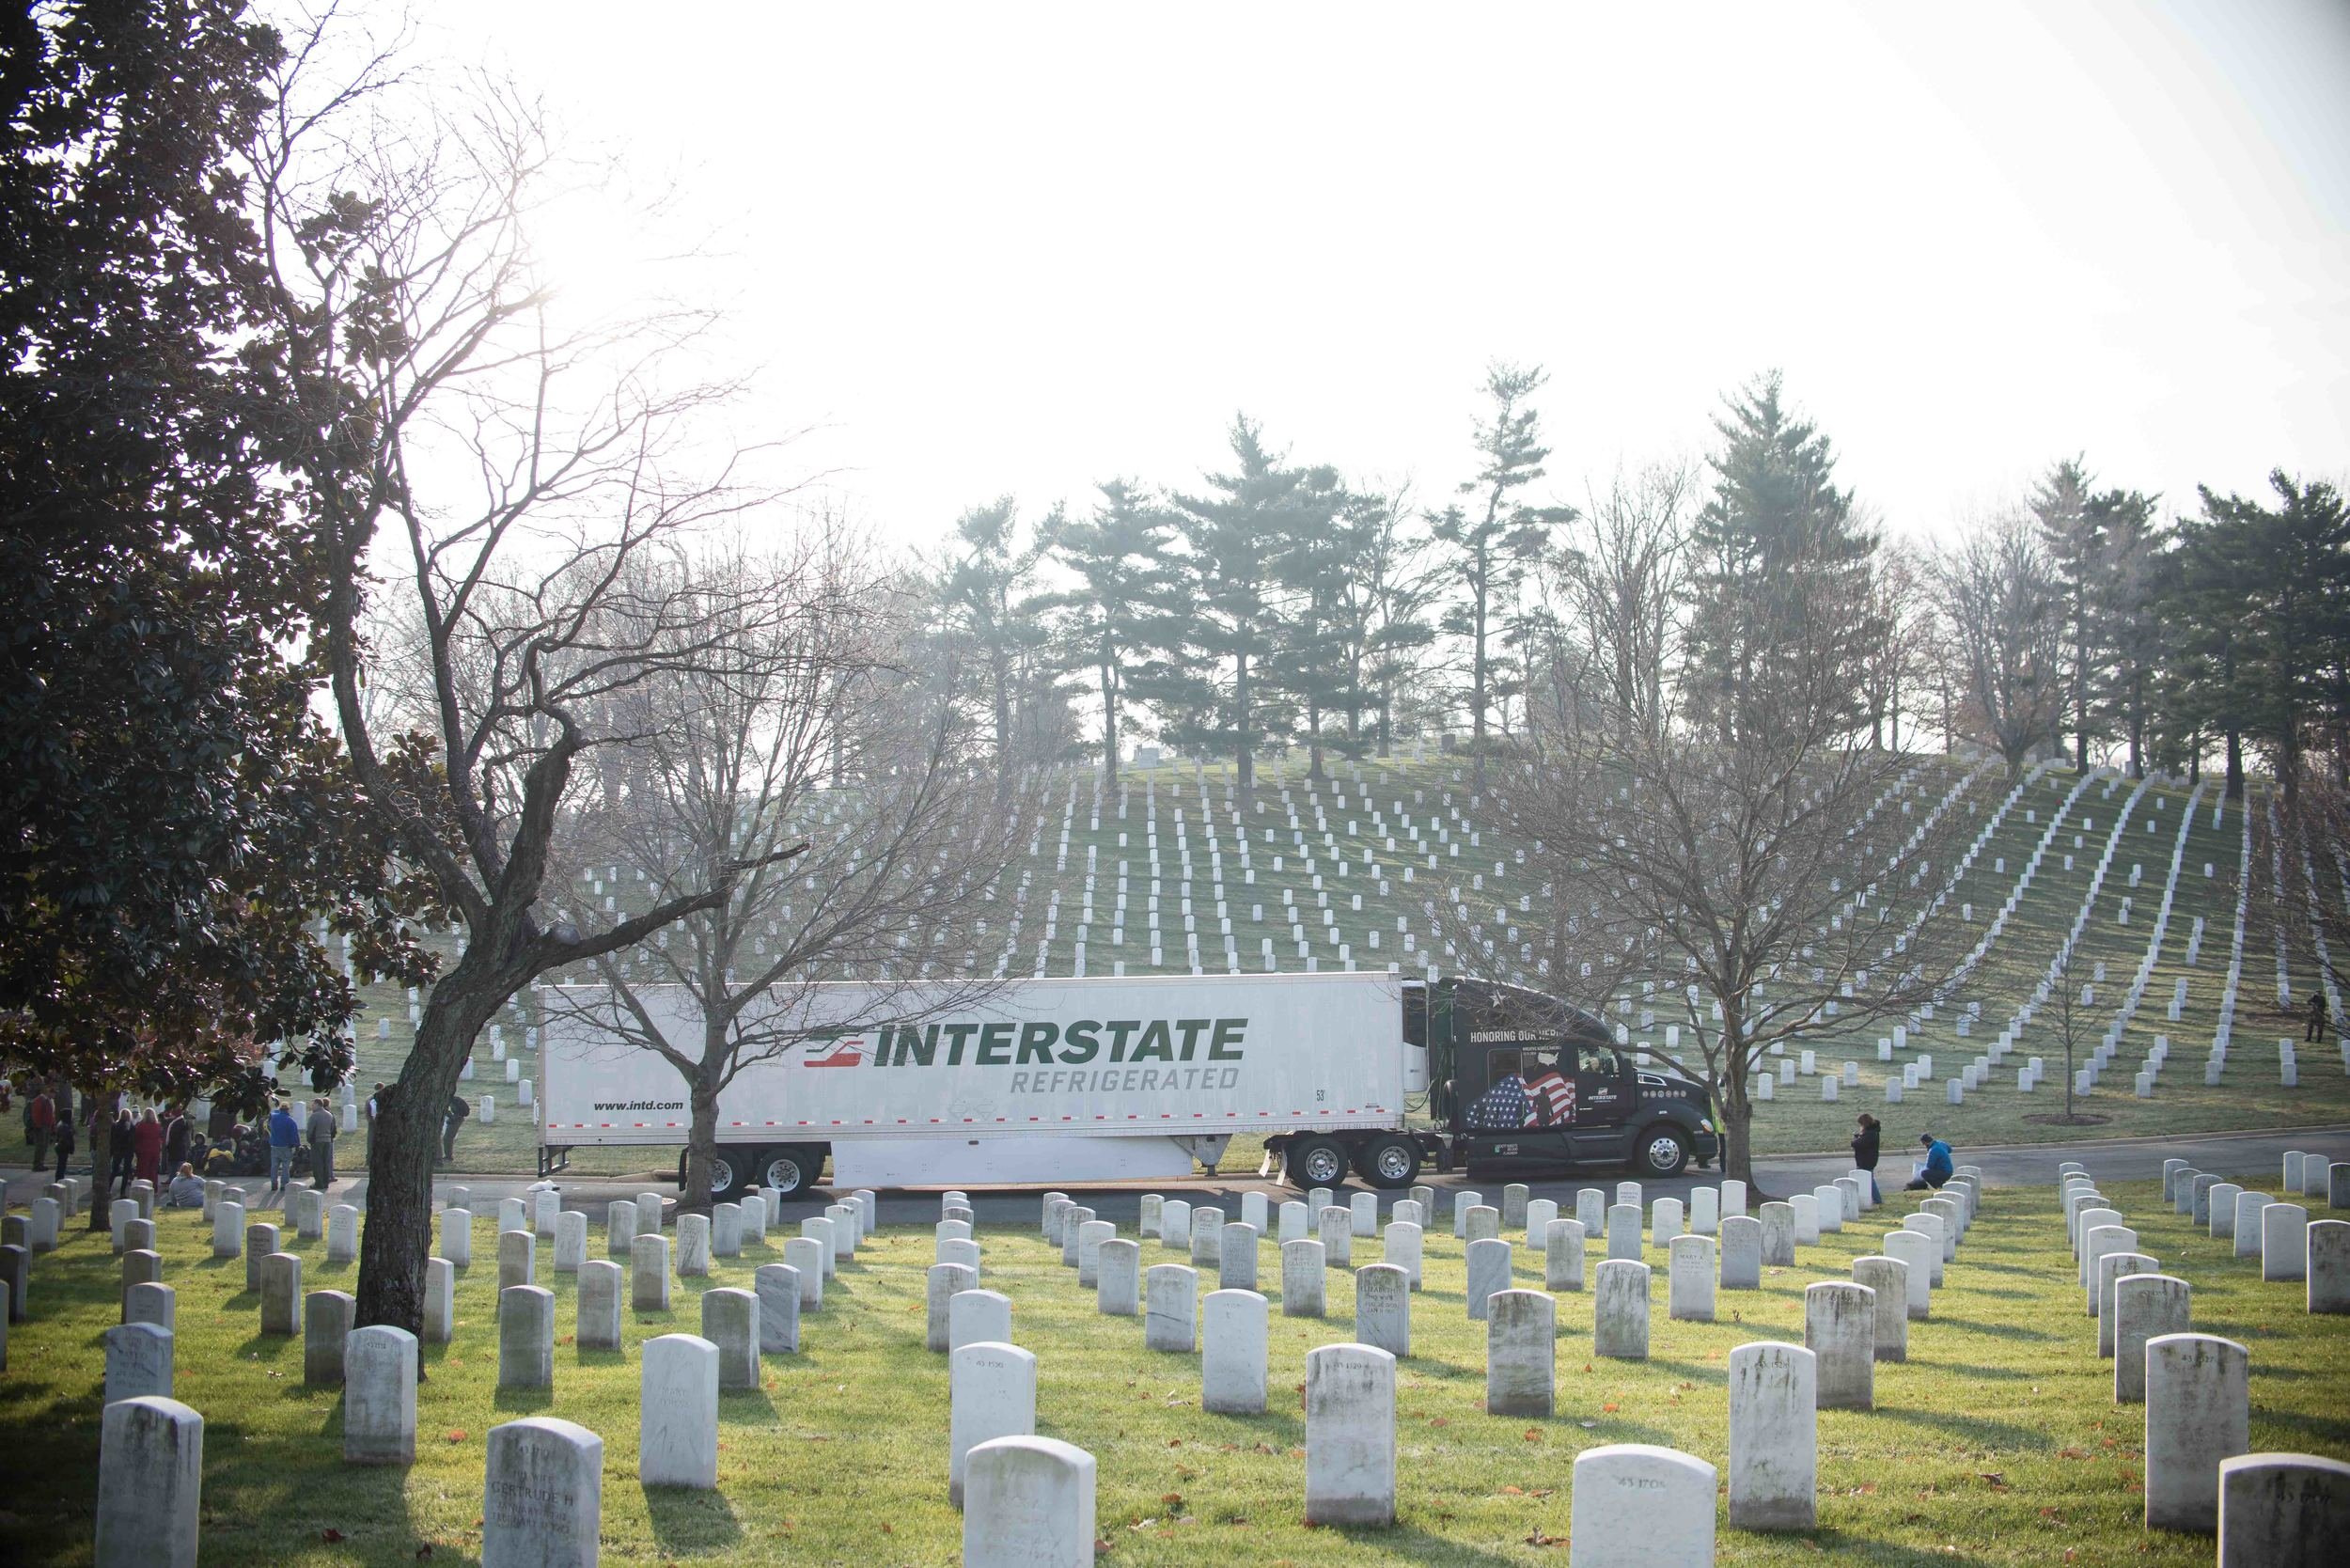 Interstate Distributor4.jpg